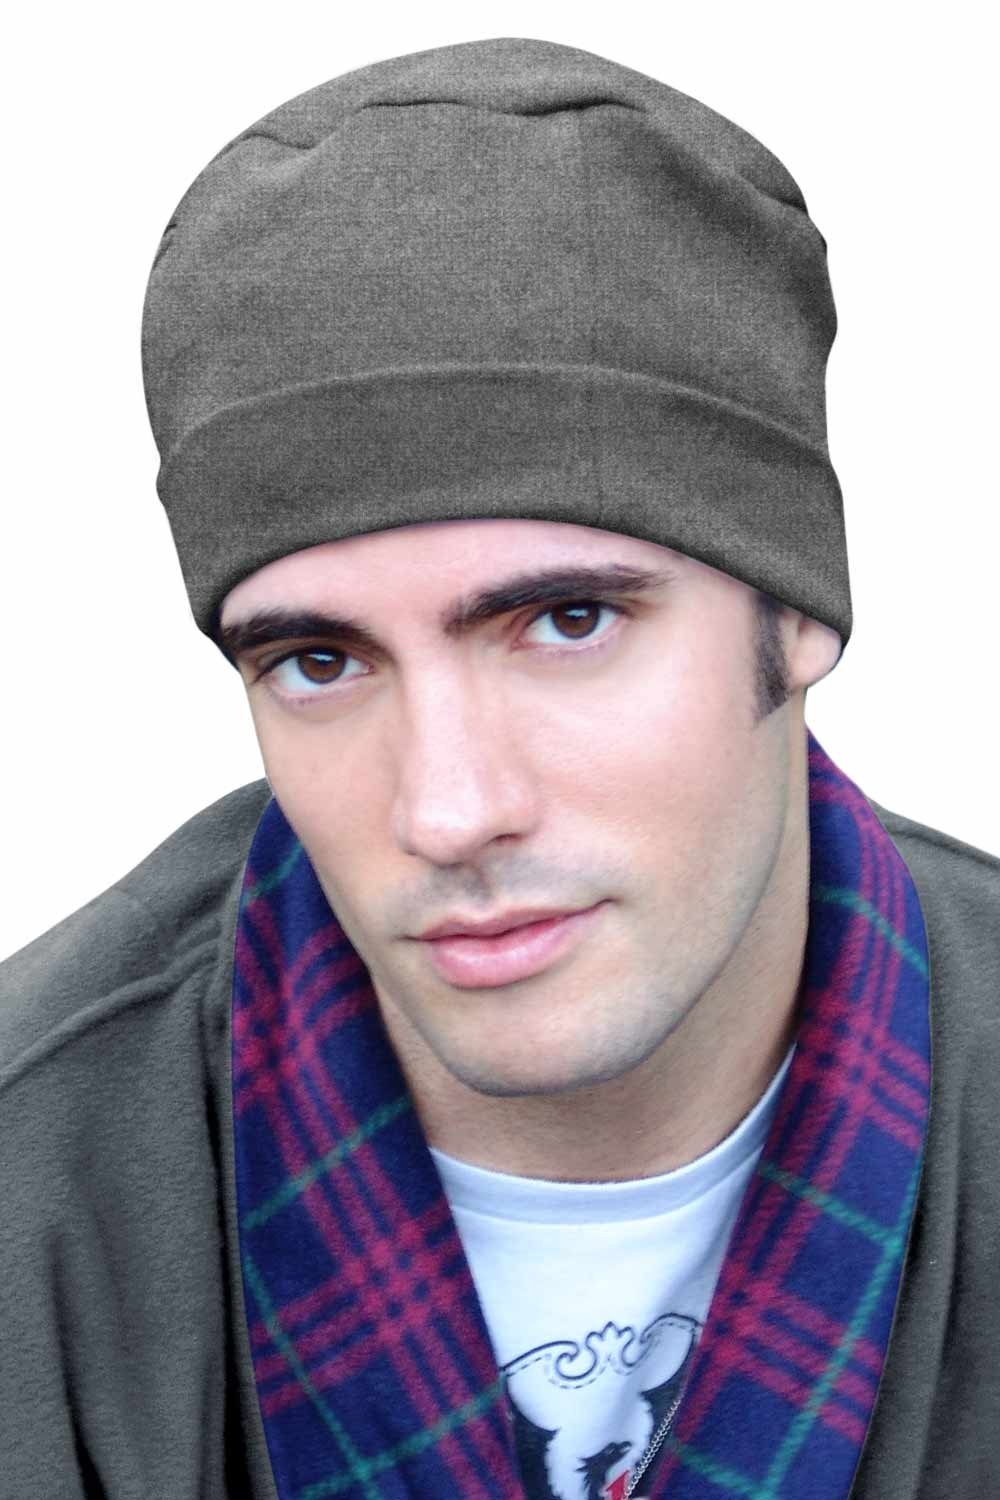 Mens Sleep Cap - 100% Cotton Night Cap for Men - Sleeping Hat Charcoal Heather Headcovers Unlimited SL-314-6754